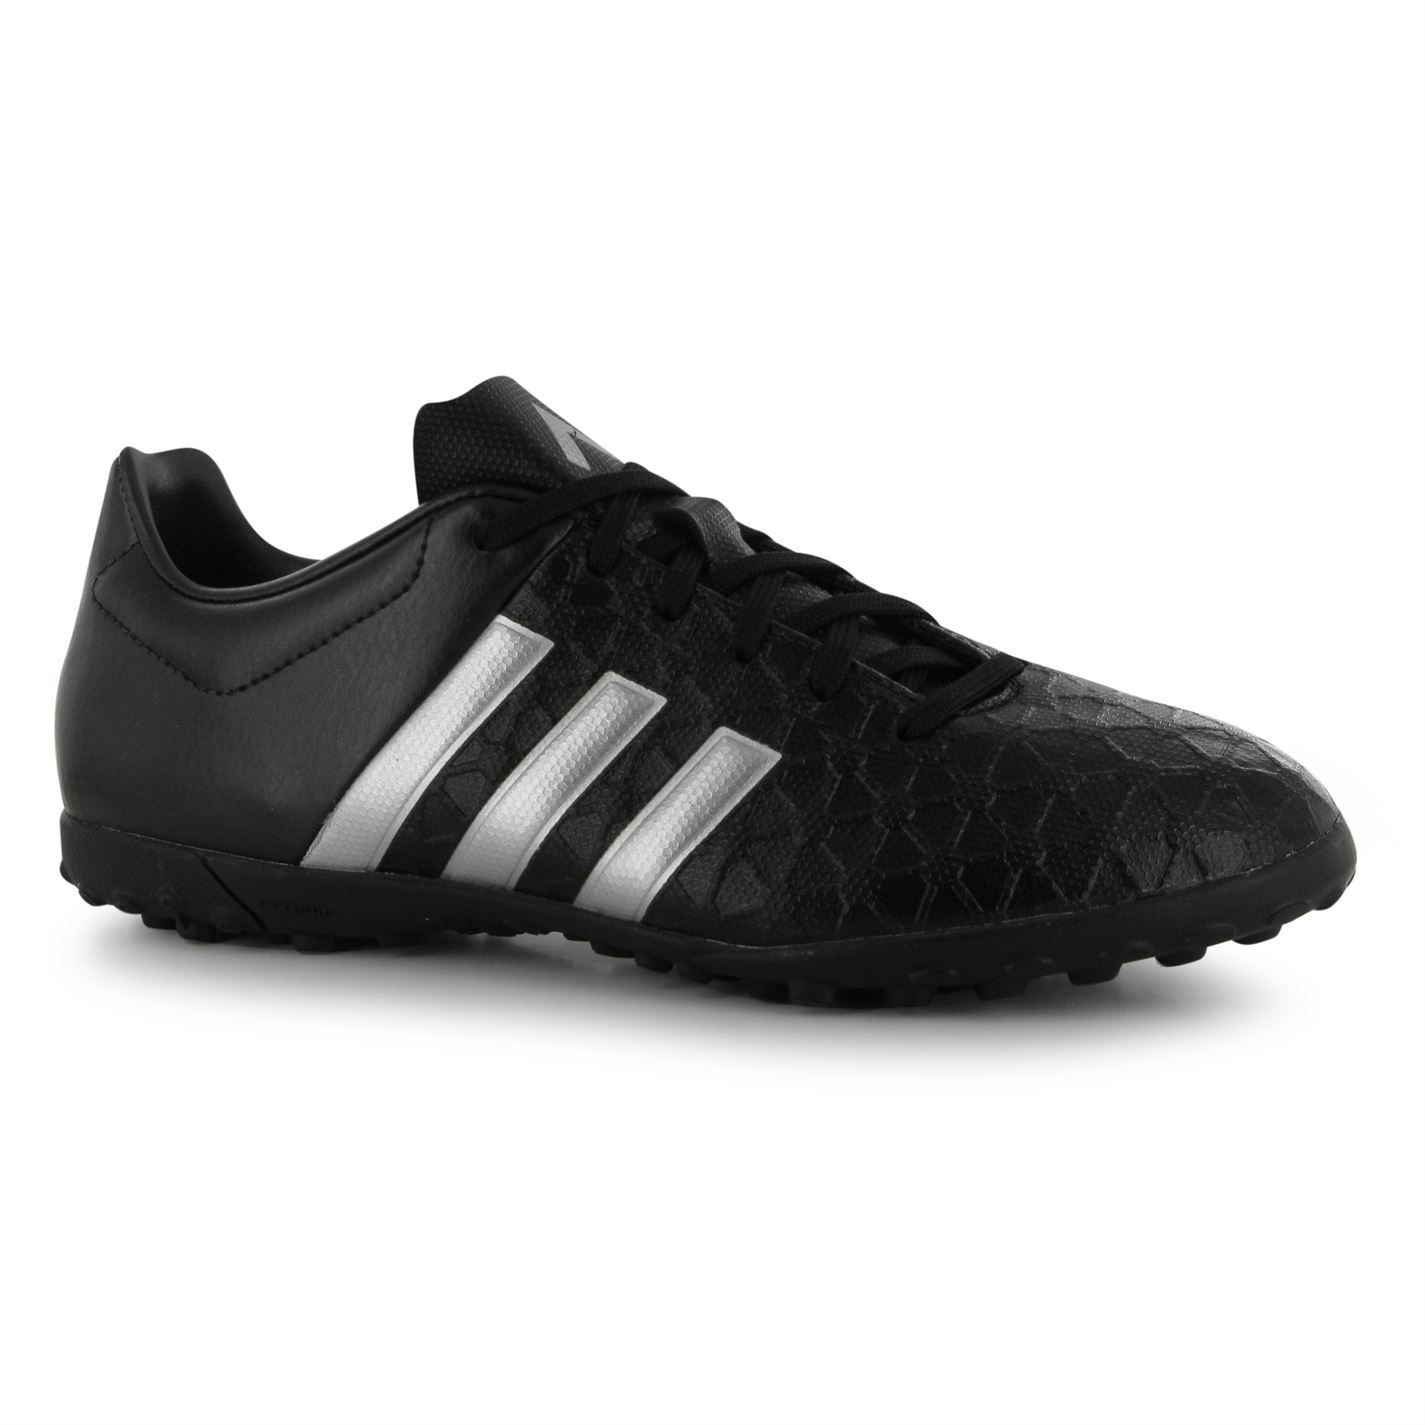 adidas ace 15.4 tf mens astro turf trainers